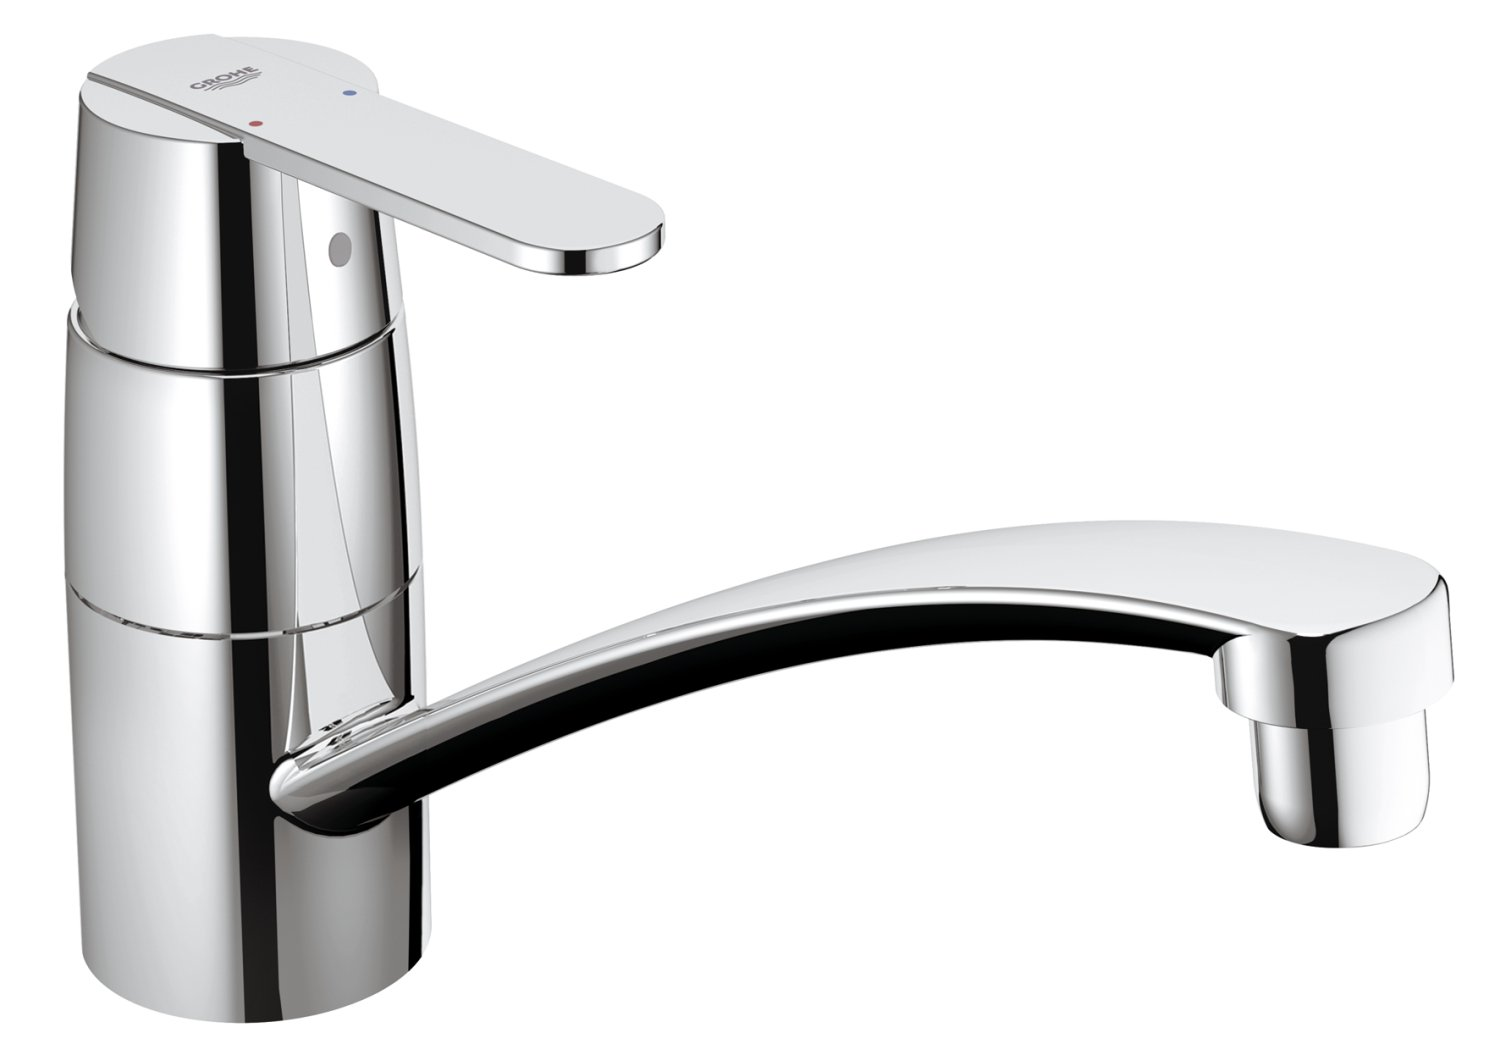 GROHE 32891000 | Get Kitchen Tap: Amazon.co.uk: DIY & Tools